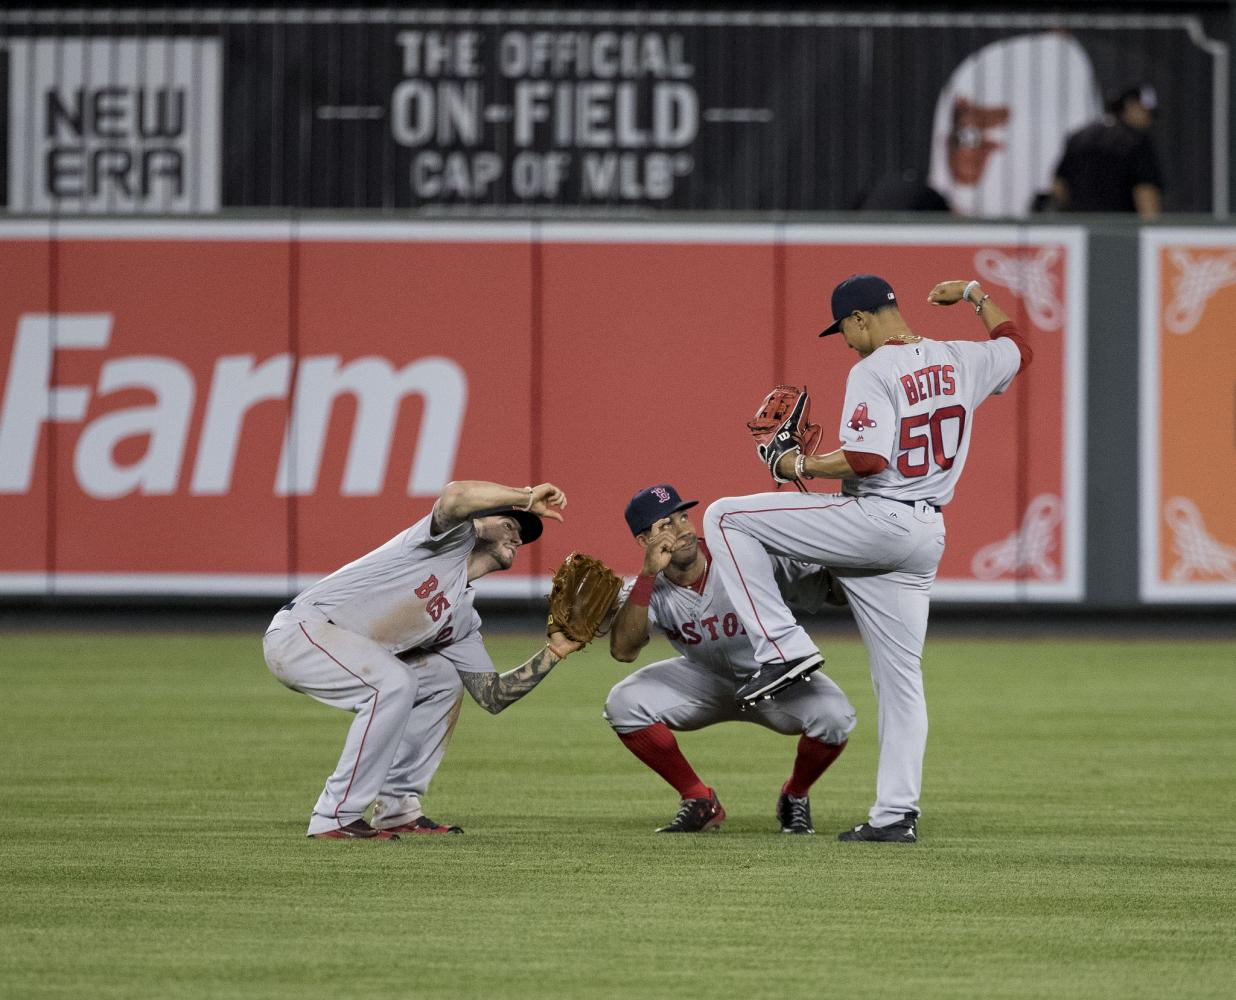 Boston Red Sox put a technological twist on stealing signs